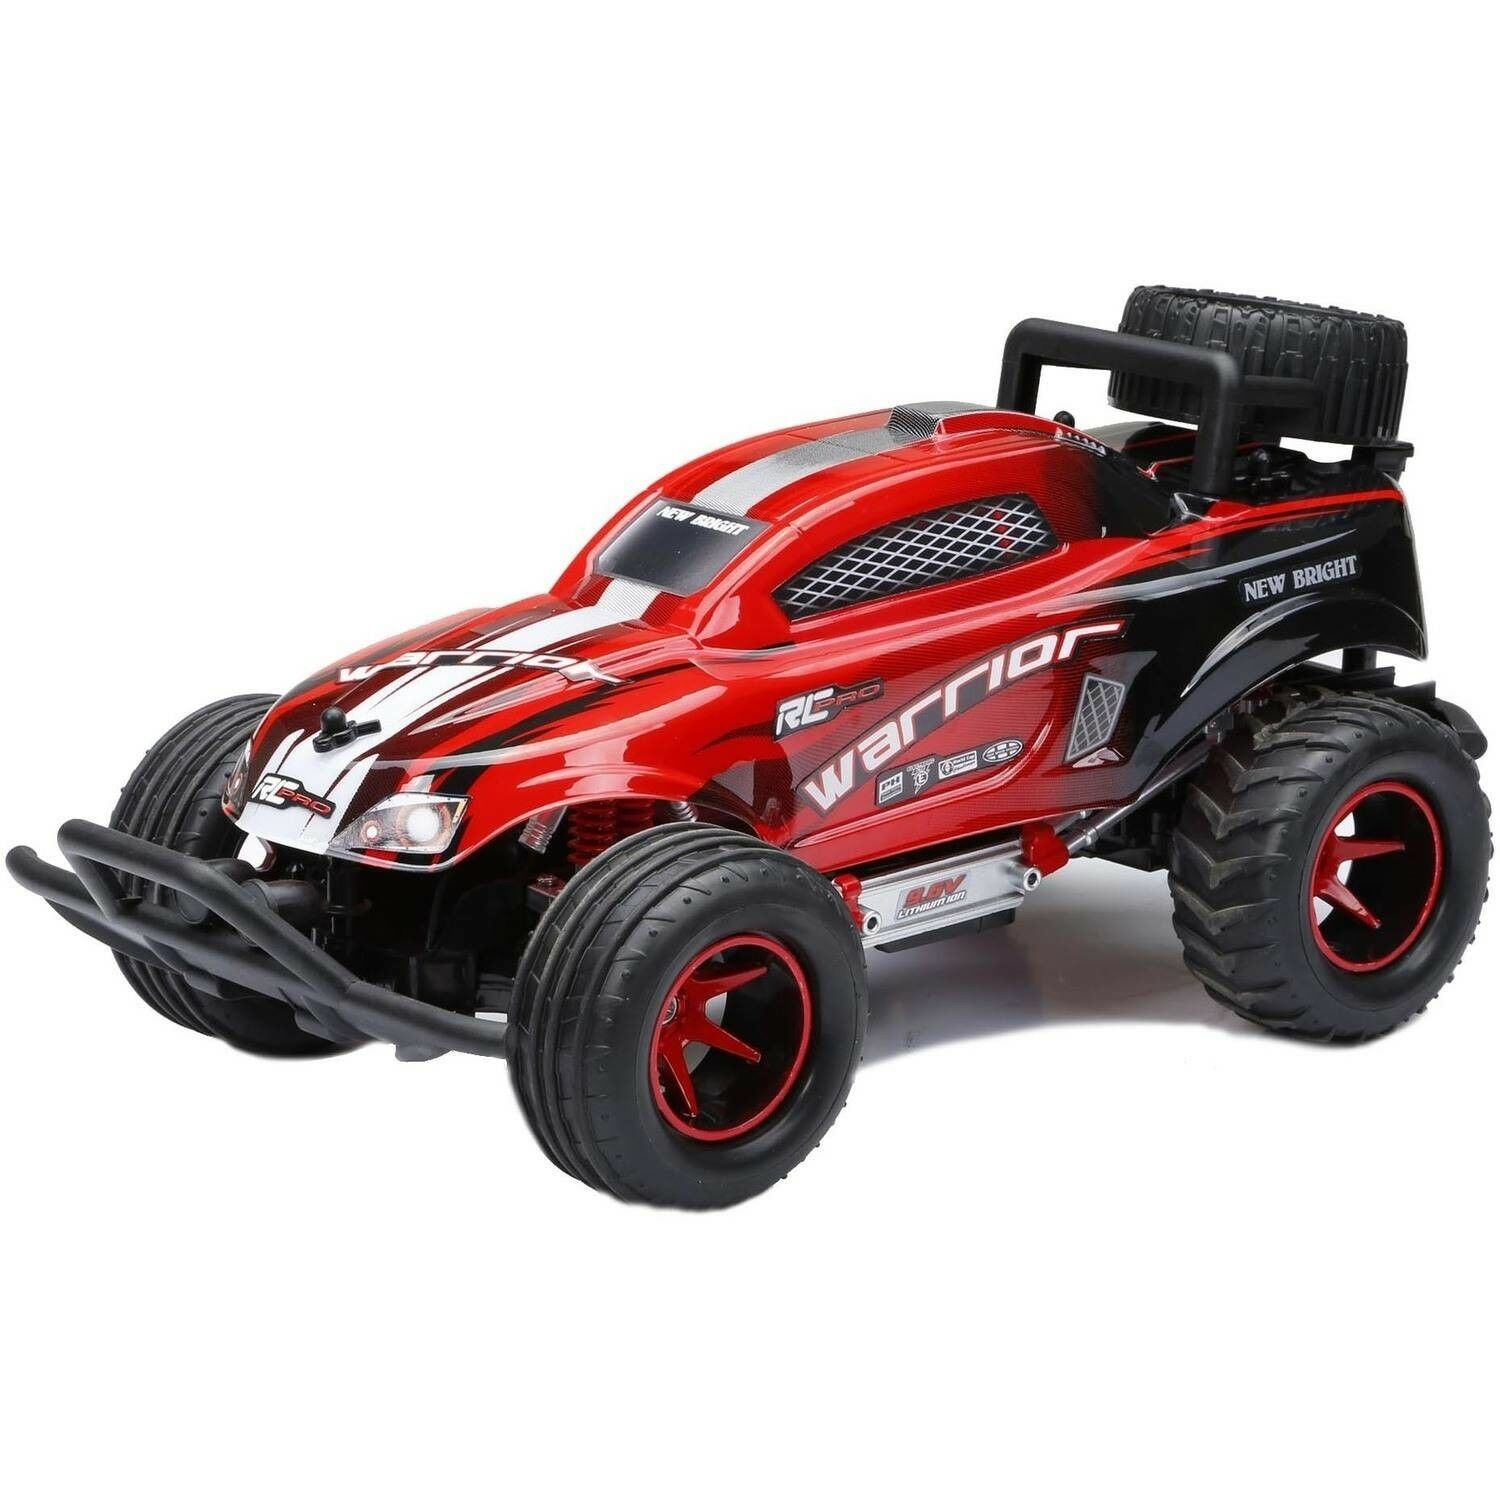 Nuovo Bright 1:16 R/C Full-Function 9.6V Pro Warrior, rosso Remote Control Play